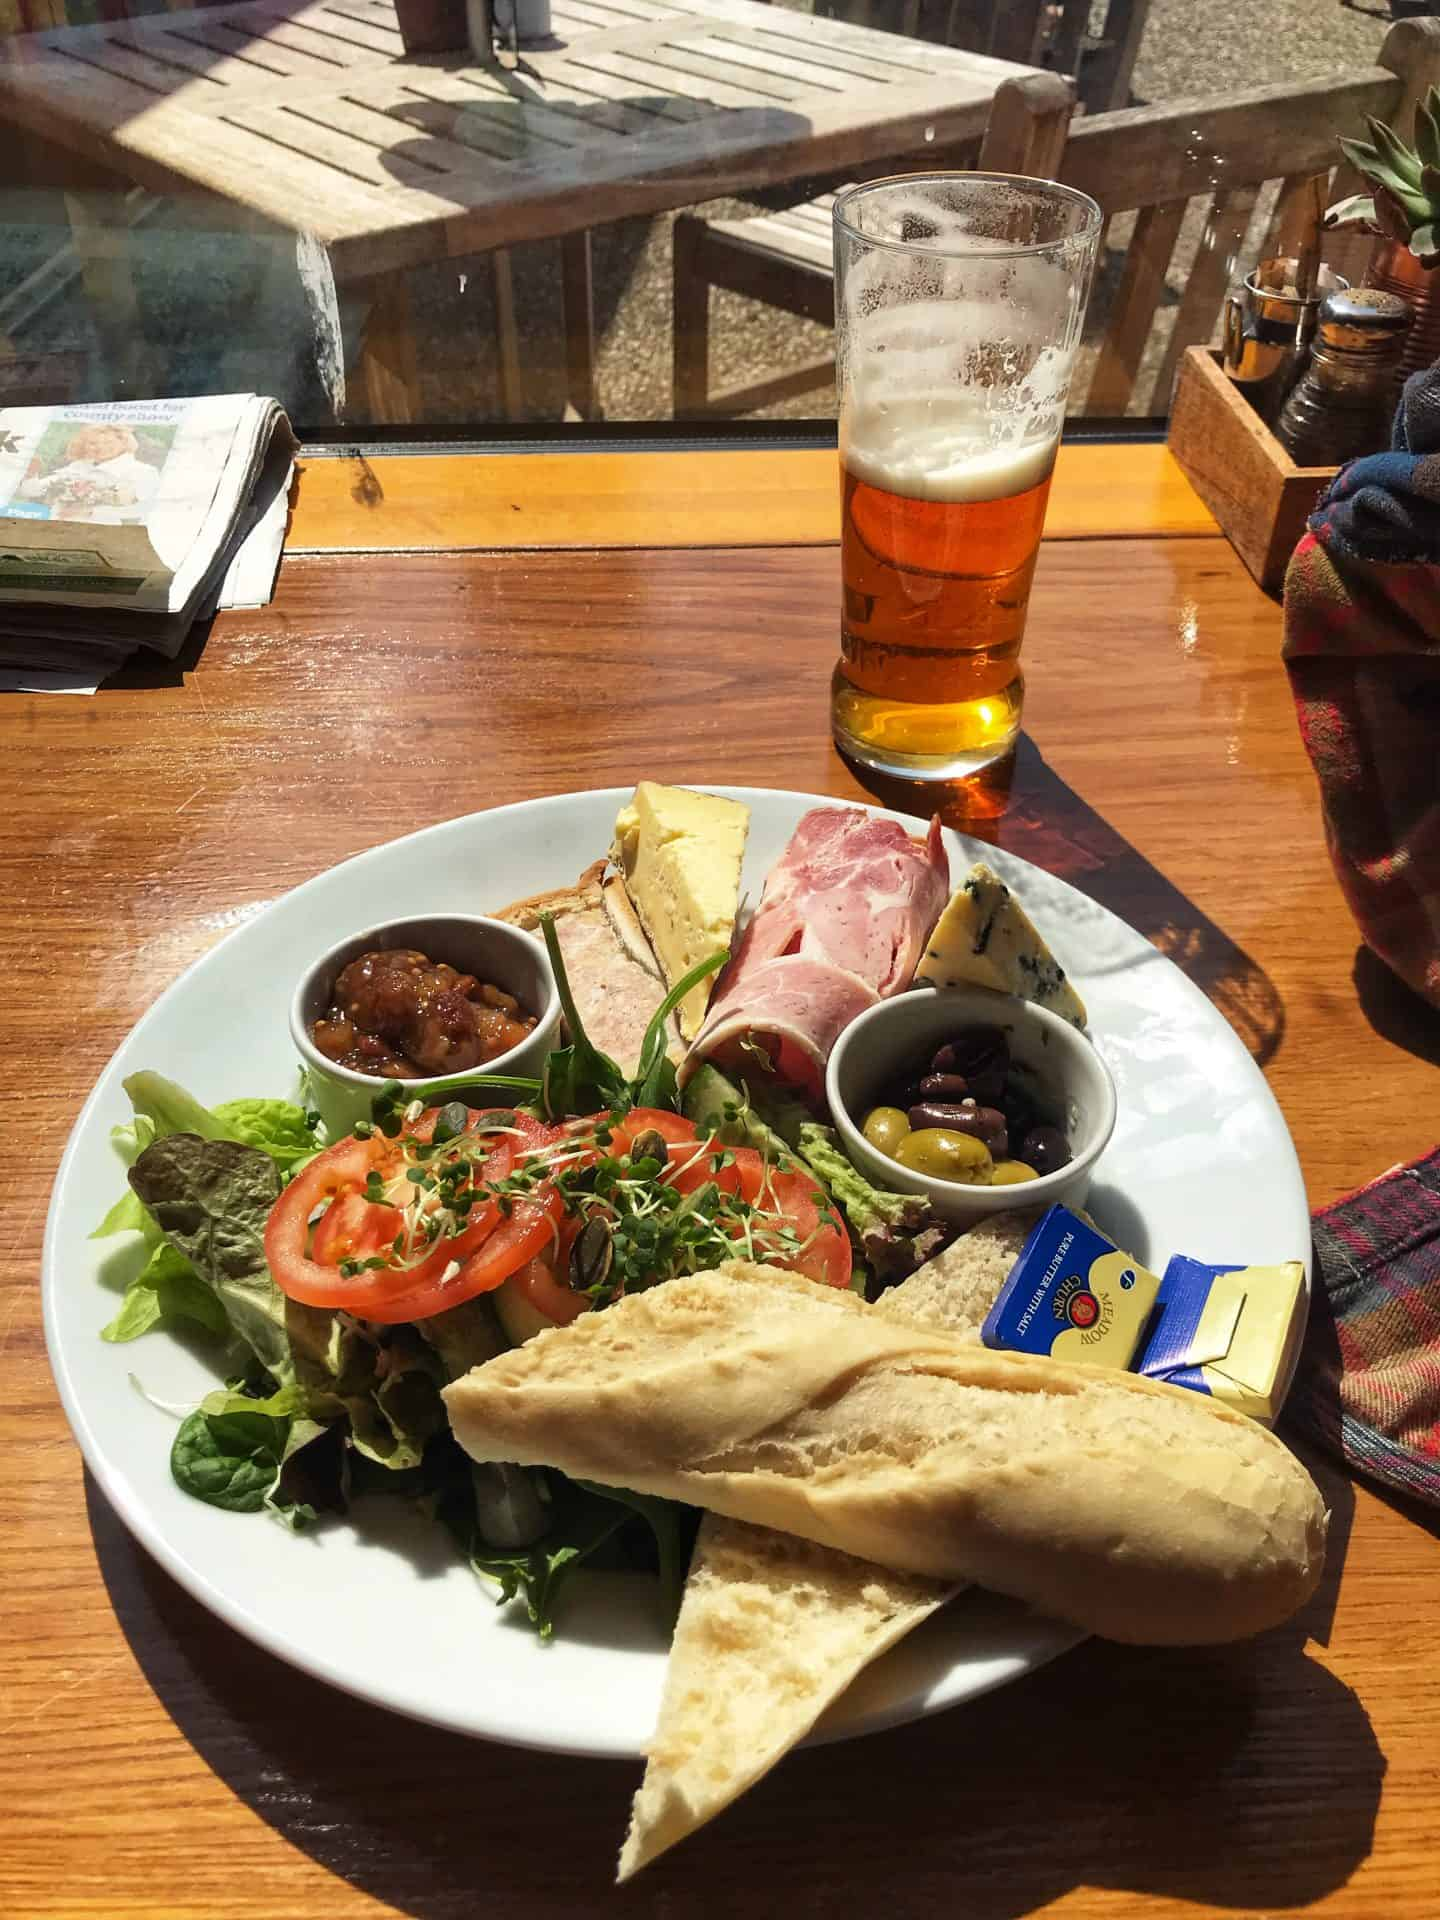 Posh ploughmans at Adnams Cafe in Southwold